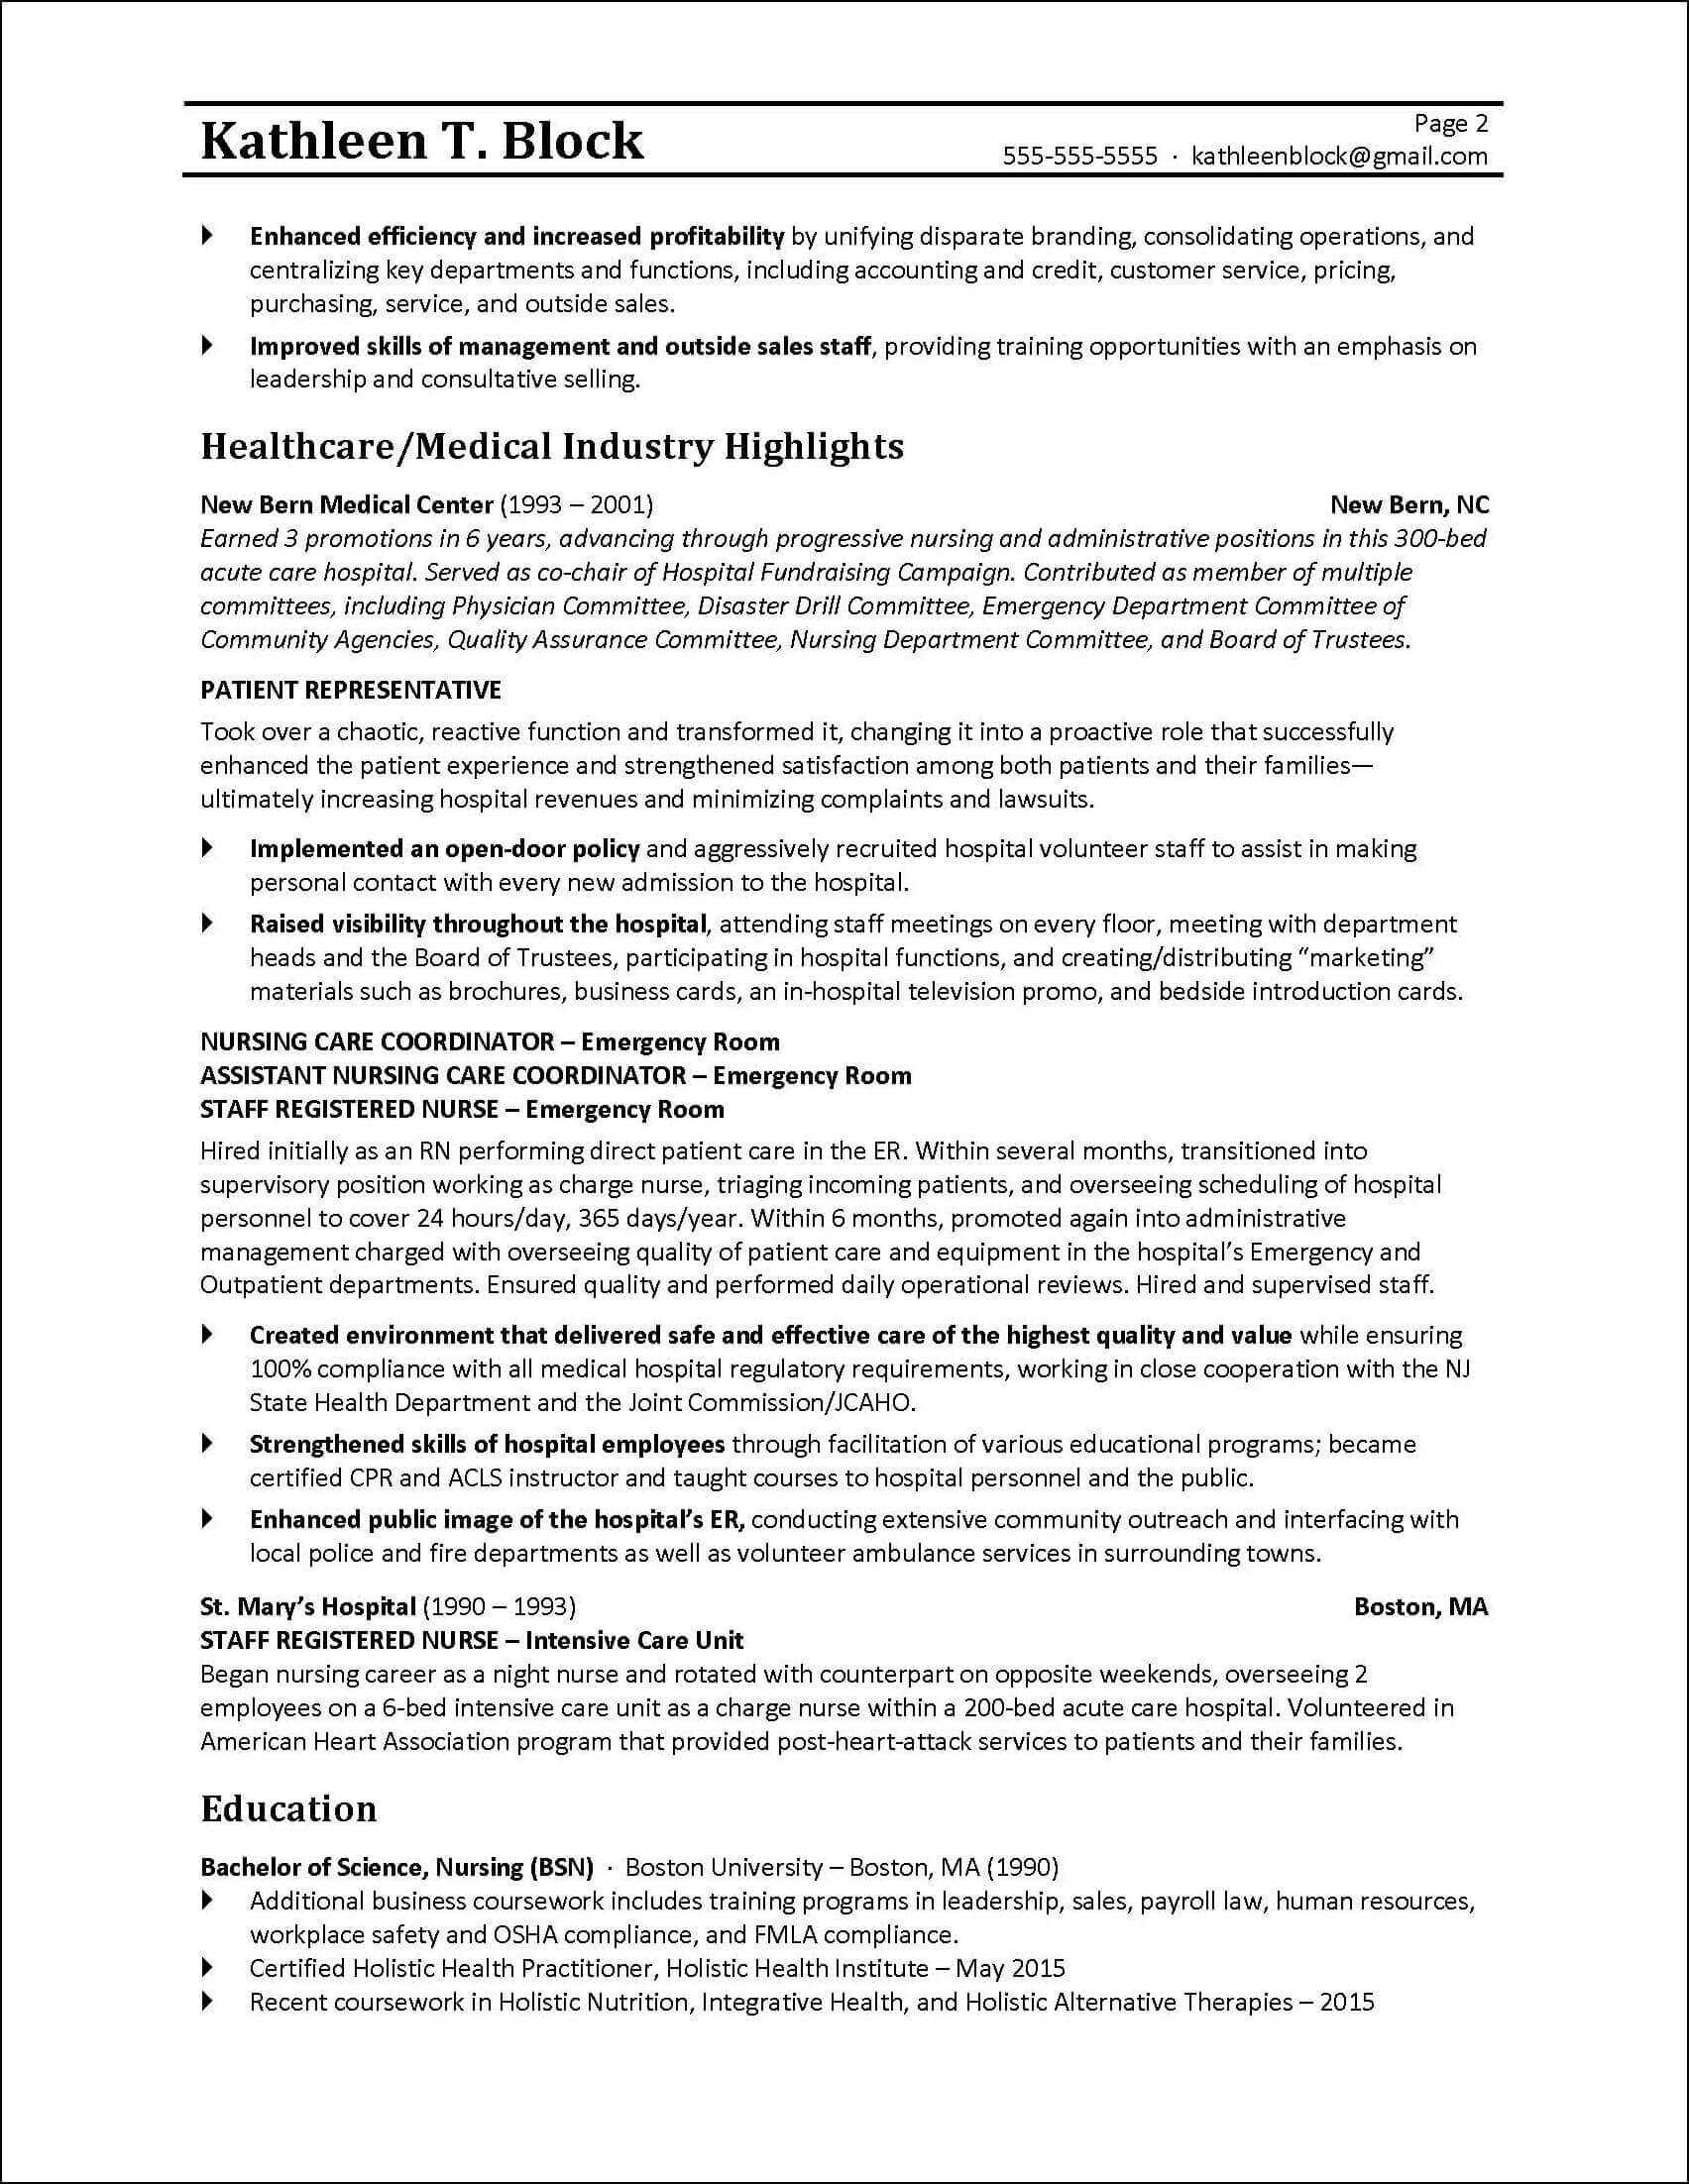 Business To Business Resume Resume Tips For Former Business Owners To Land A Corporate Job